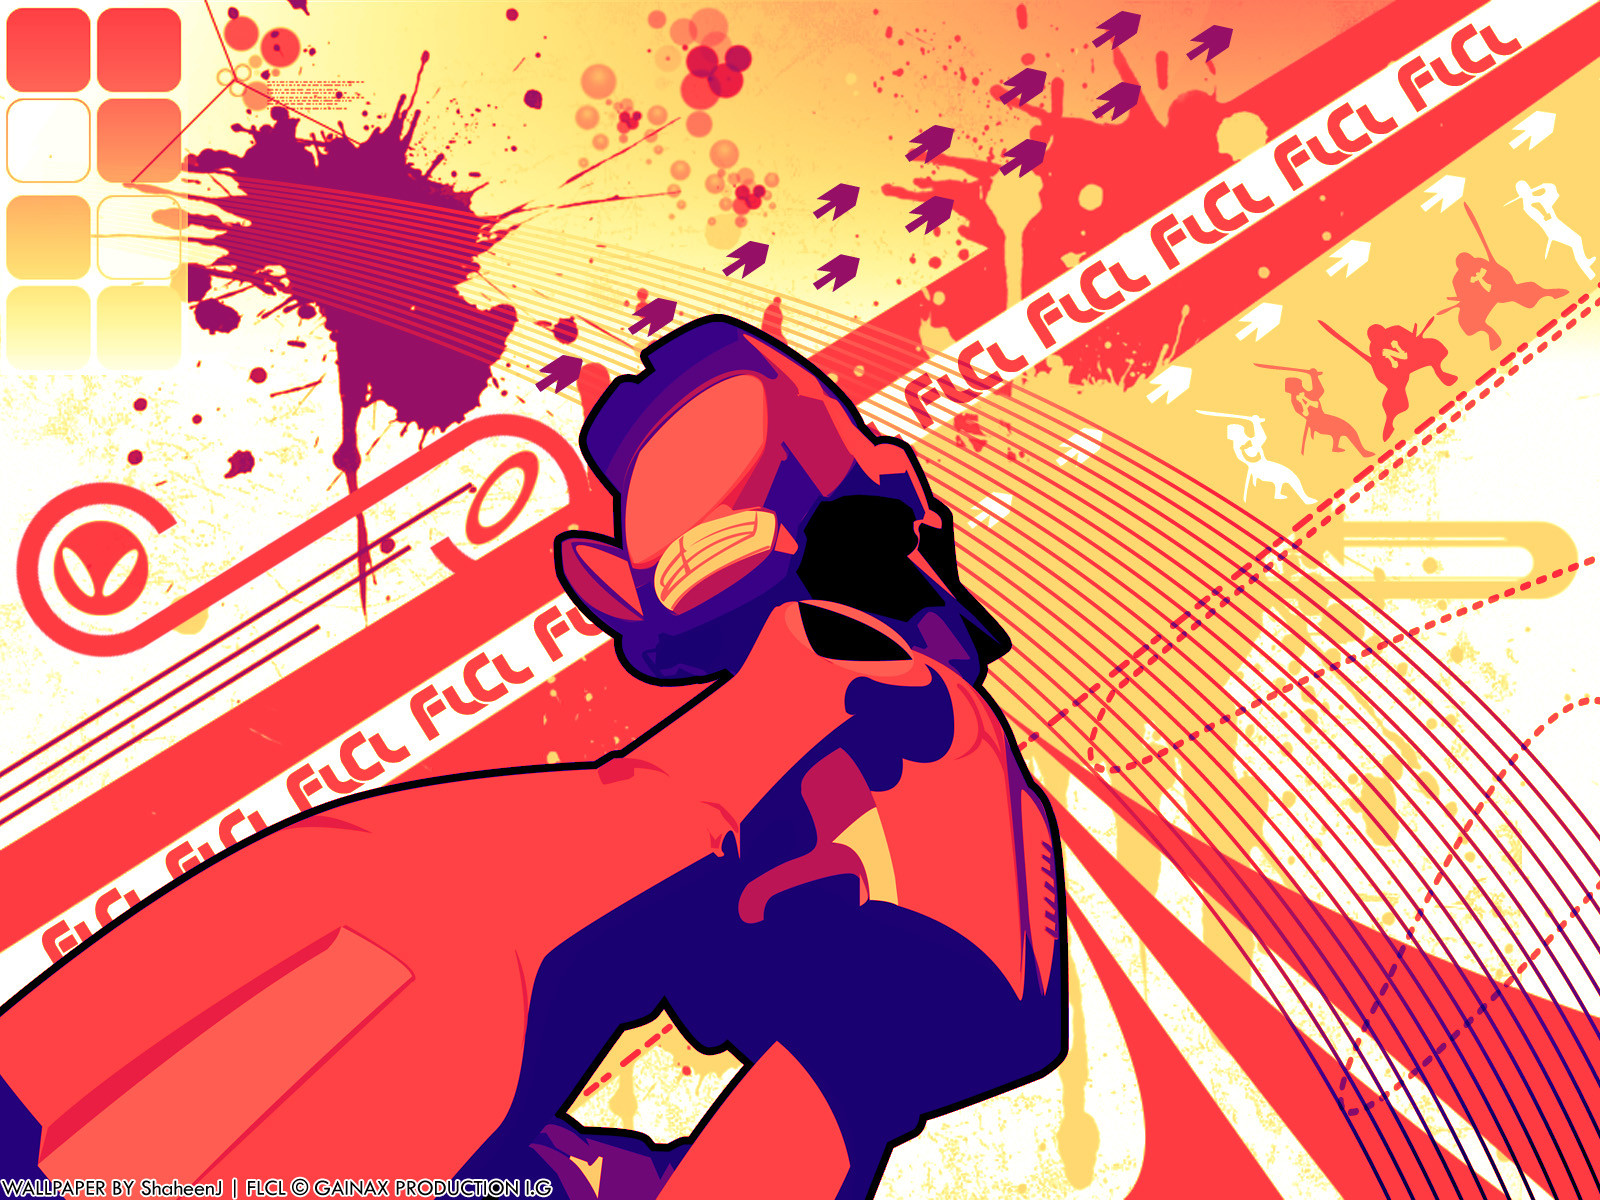 Flcl fooly cooly canti wallpaper 1600x1200 196501 - Flcl wallpaper ...